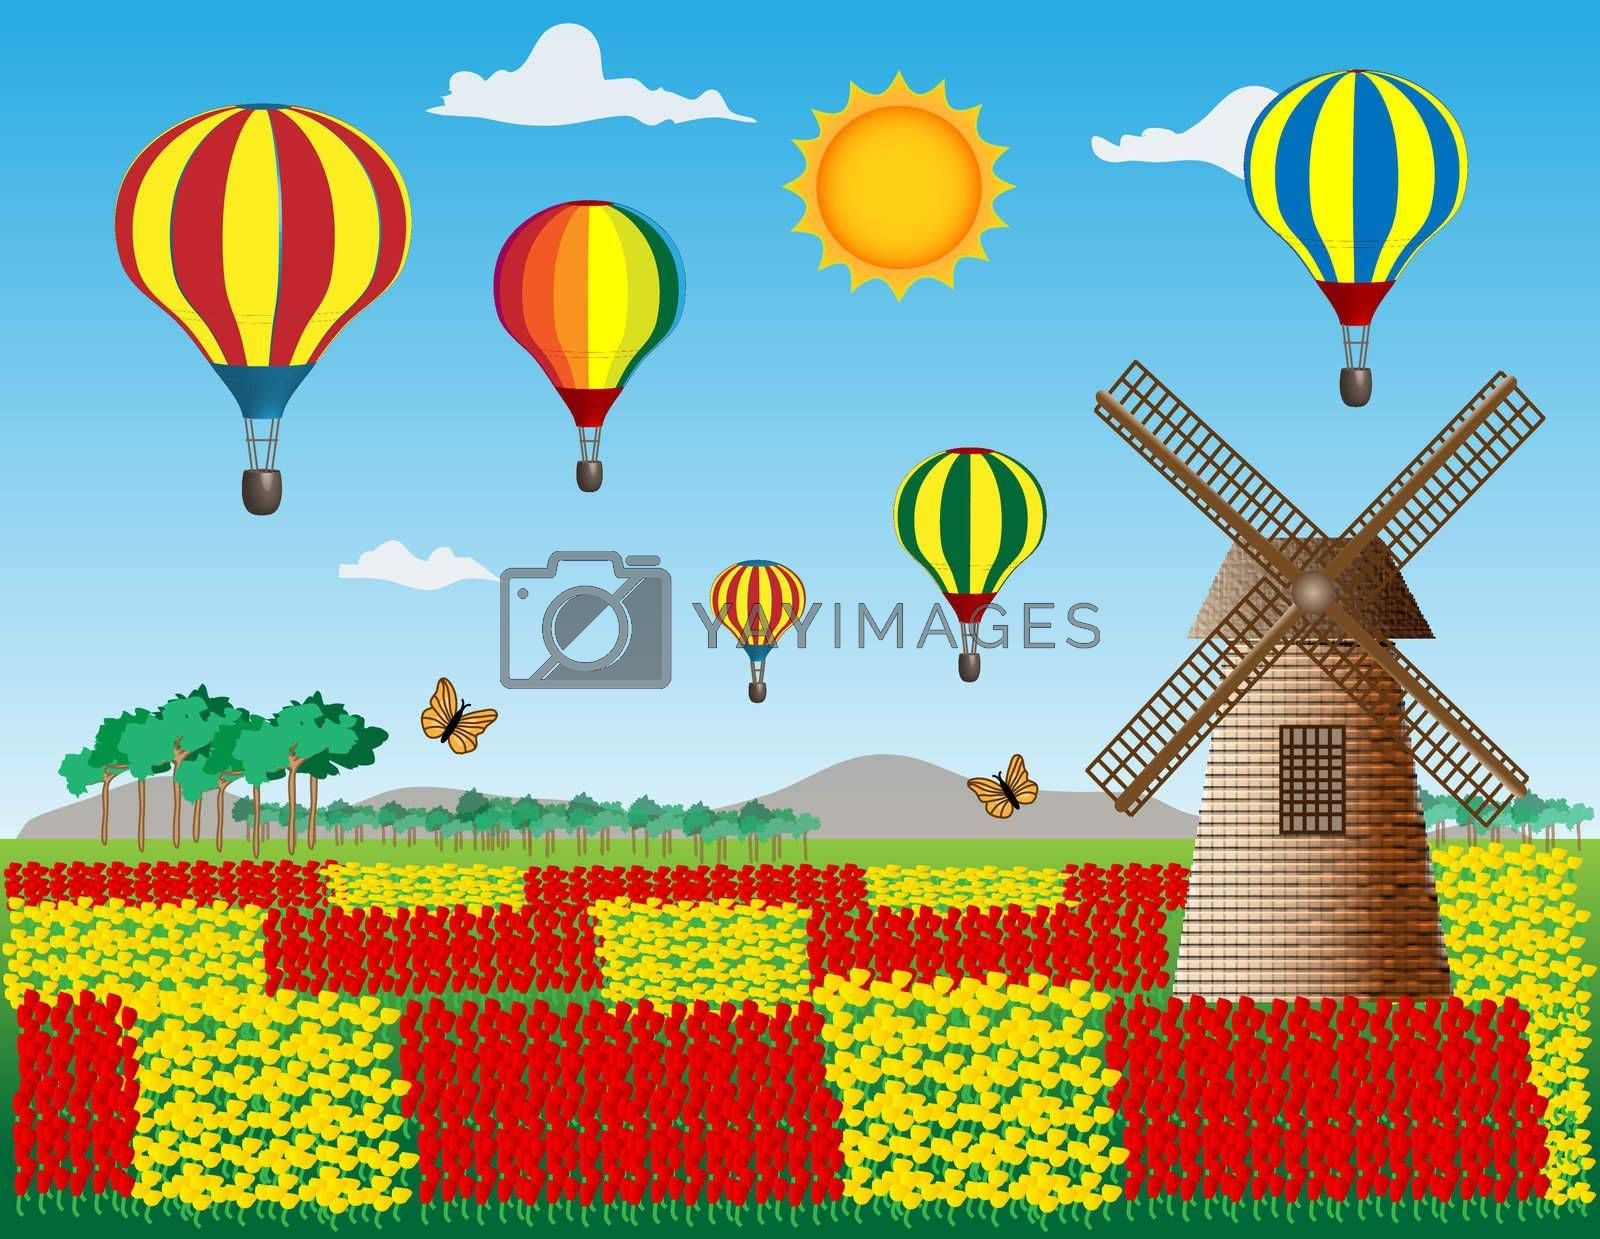 Royalty free image of Balloons by meletver